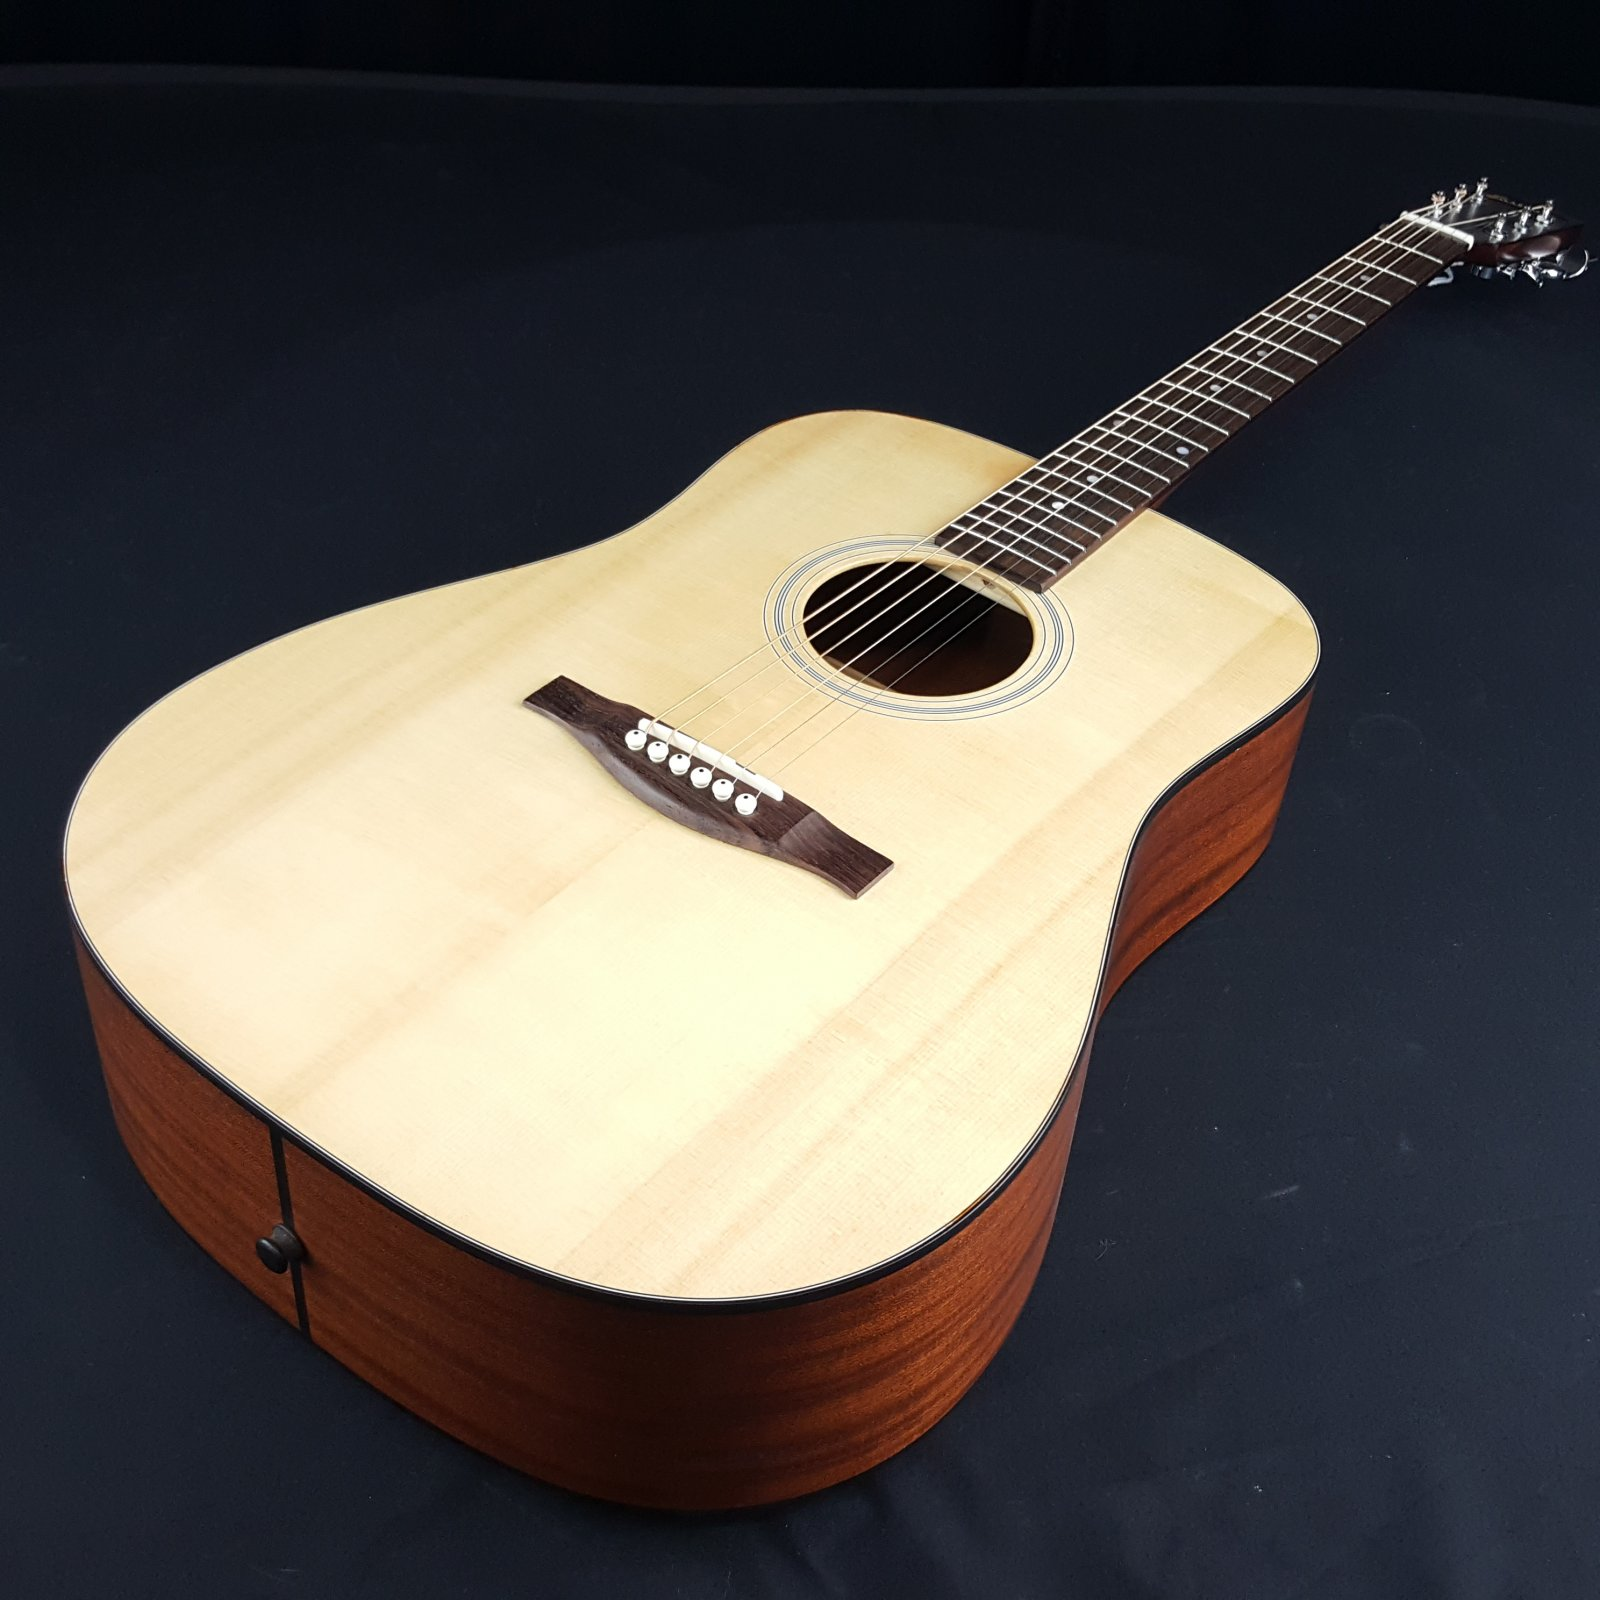 Eastman AC-DR1 Dreadnought Model Acoustic with Gig Bag